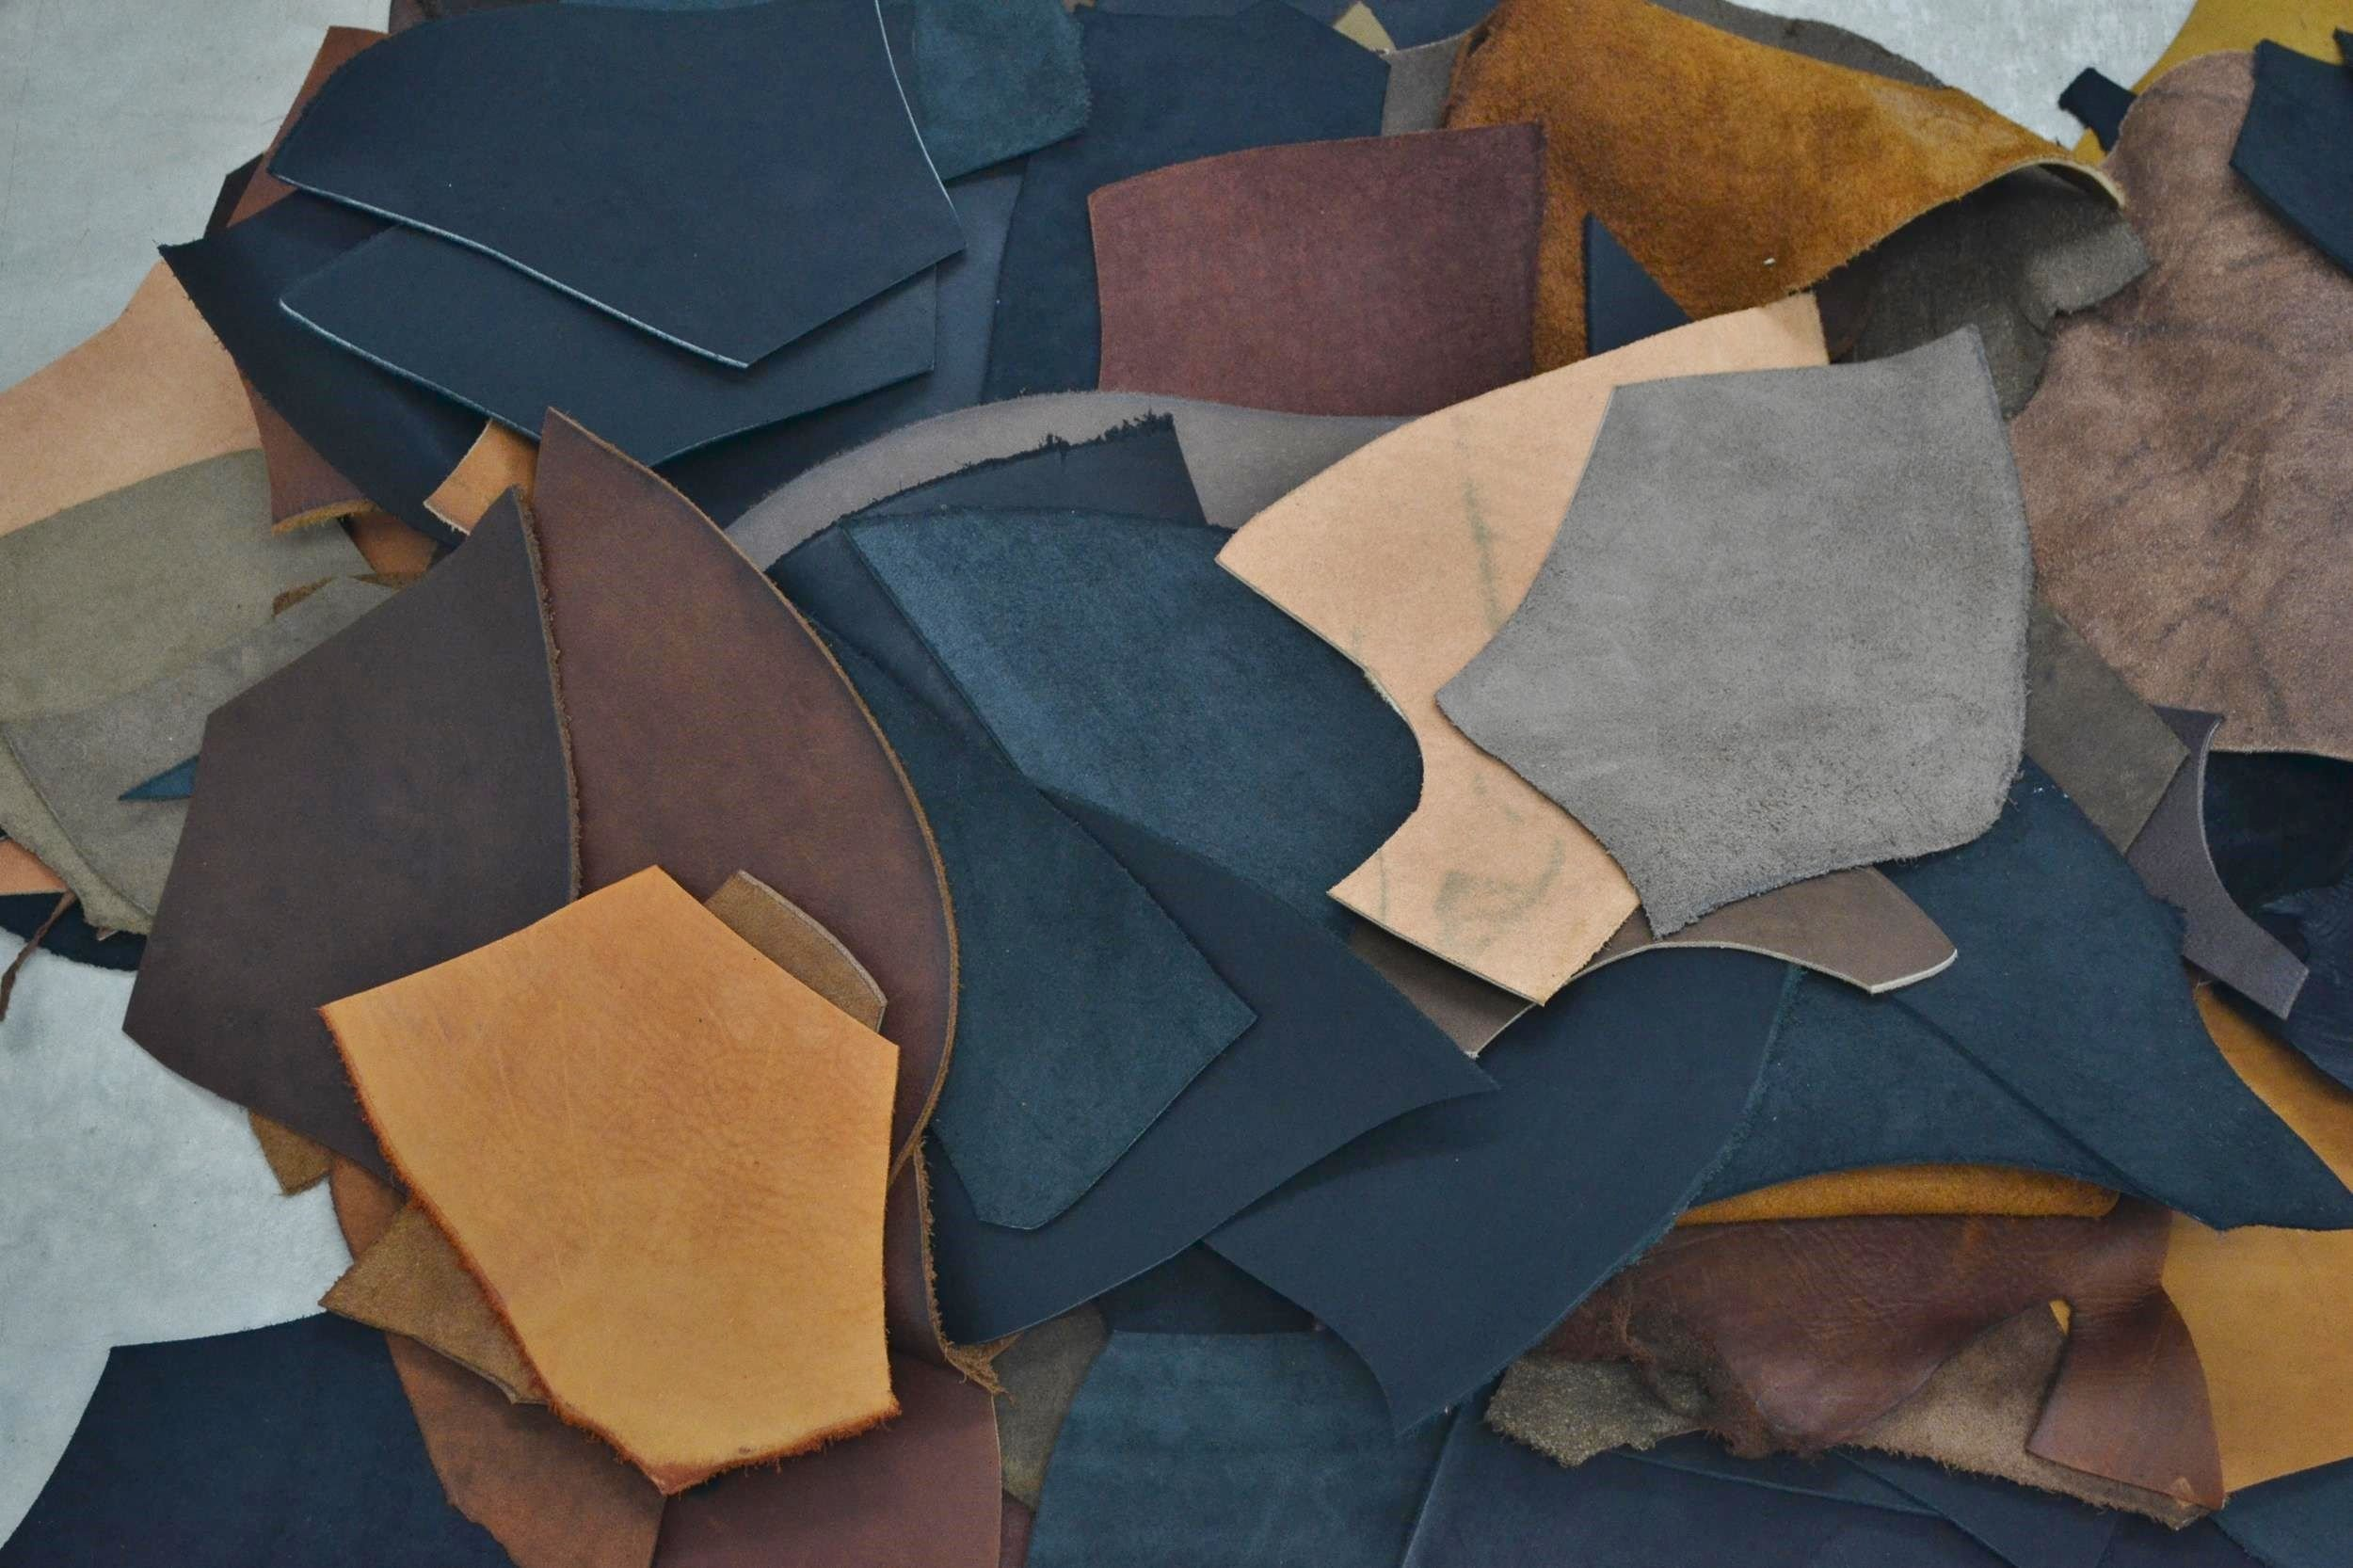 Leather Scrap Oil Tanned Cow 1 Pound 5-6 Ounces Earth Toned Colors -j